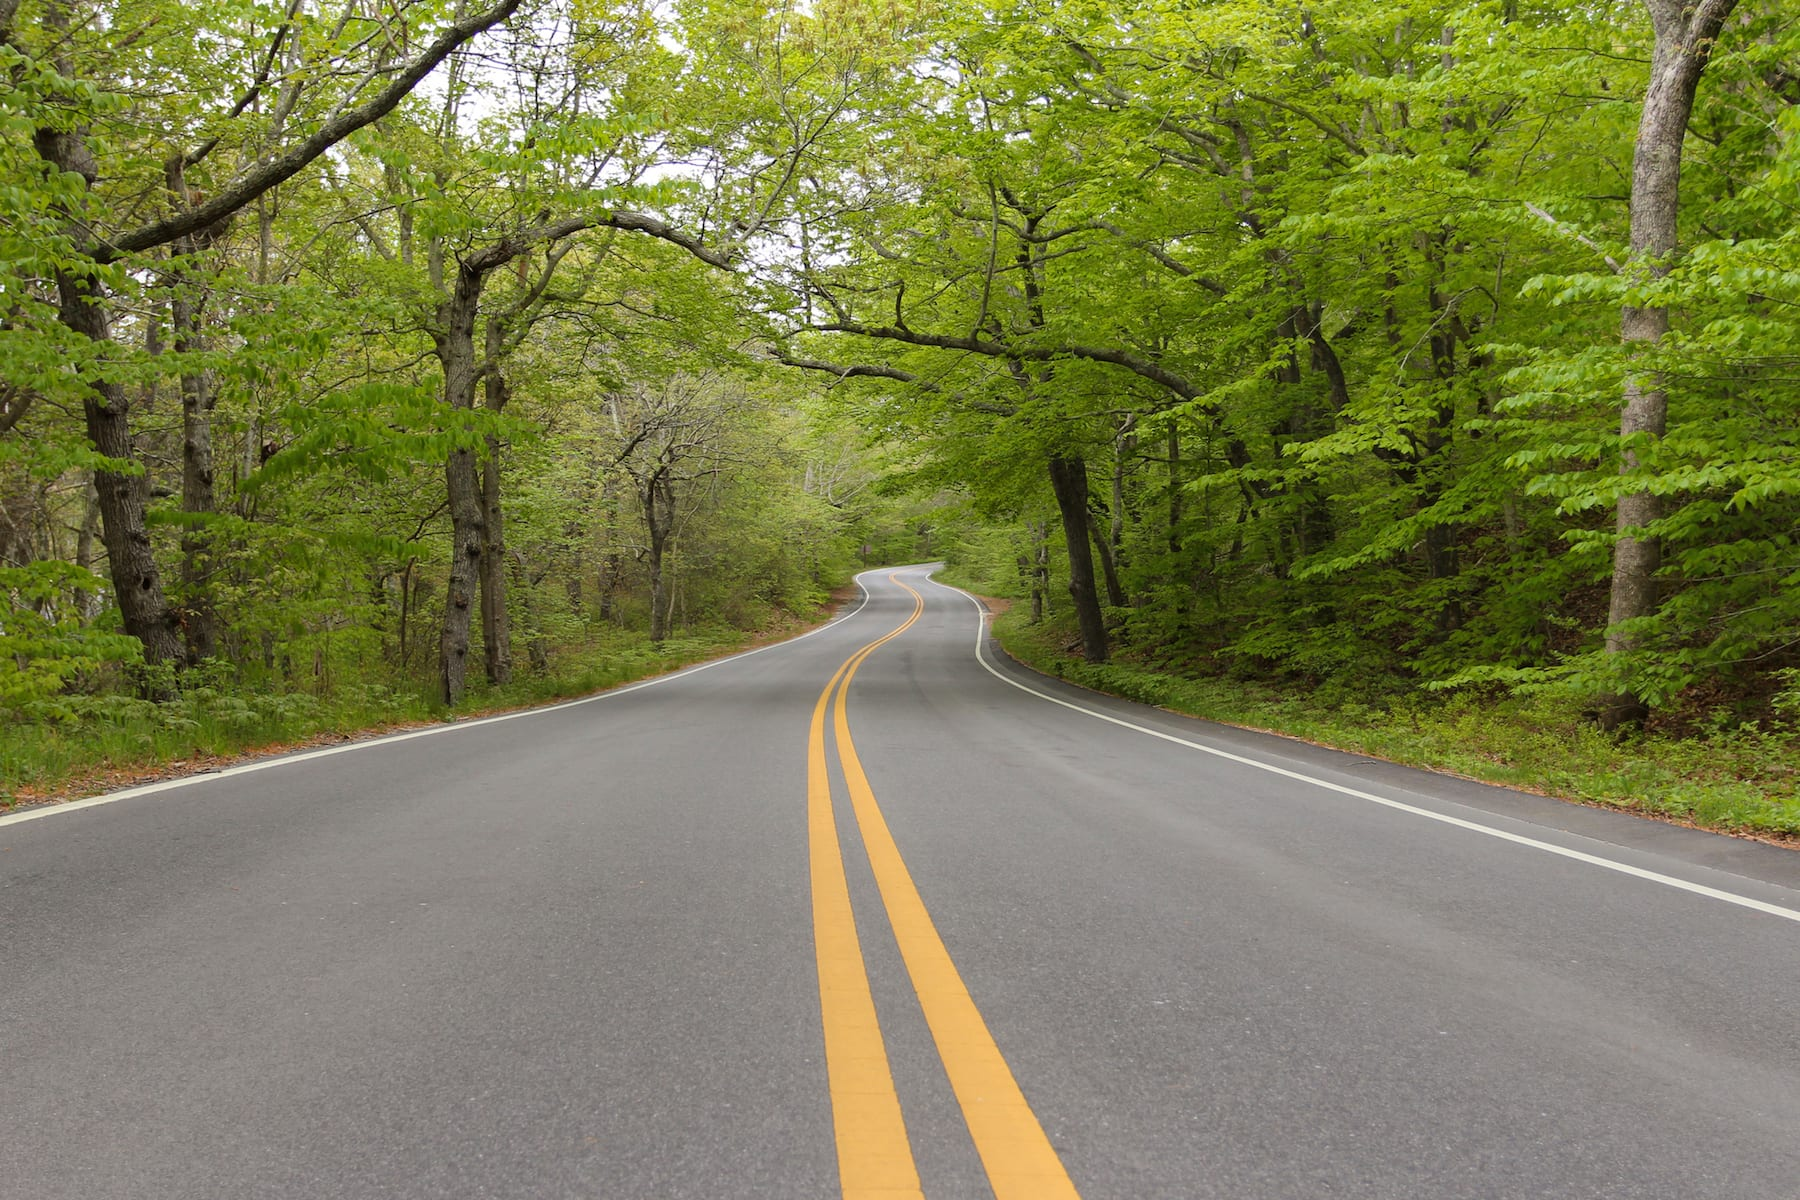 Winding road with trees on both sides.